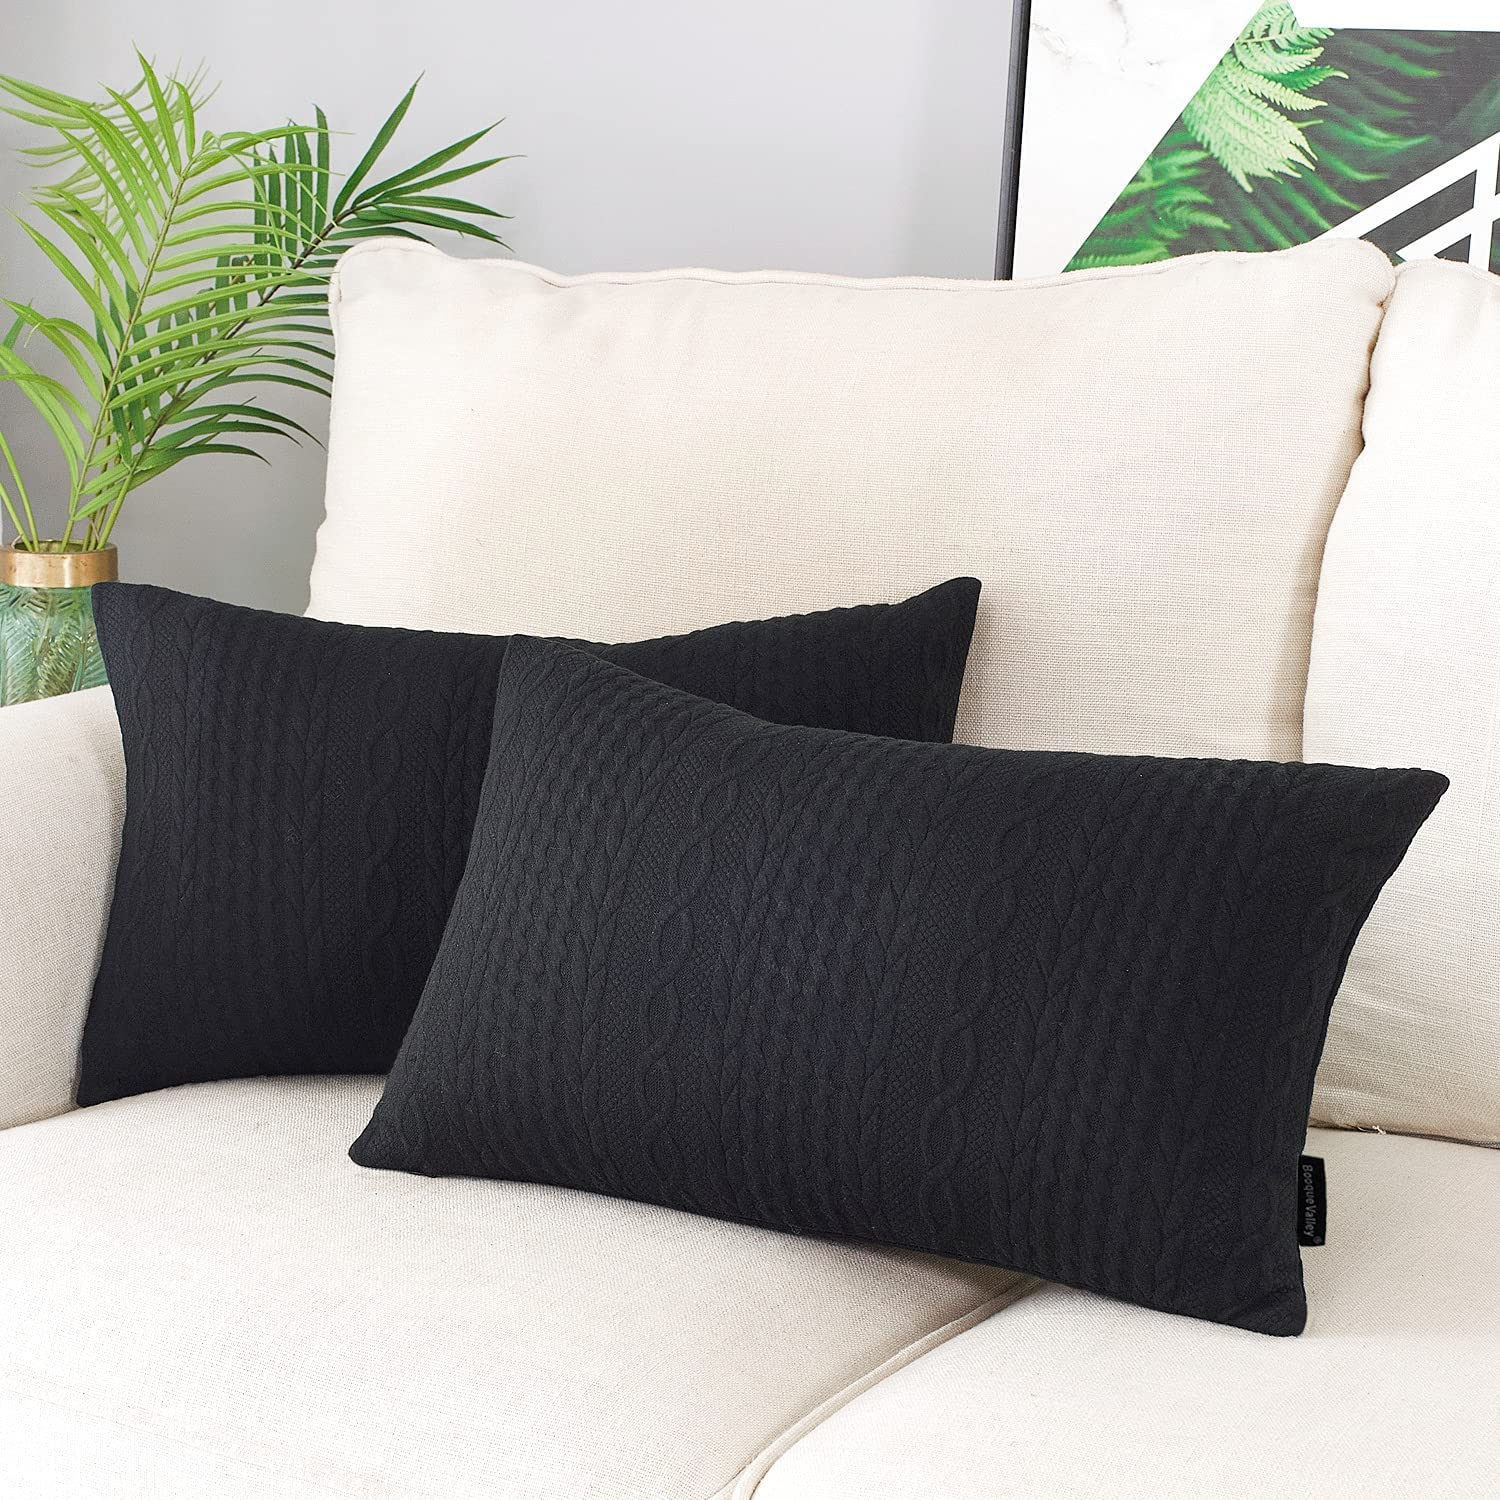 Booque Valley Ranking TOP12 Rectangular Throw Pillow Covers of 2 S Pack sold out Super